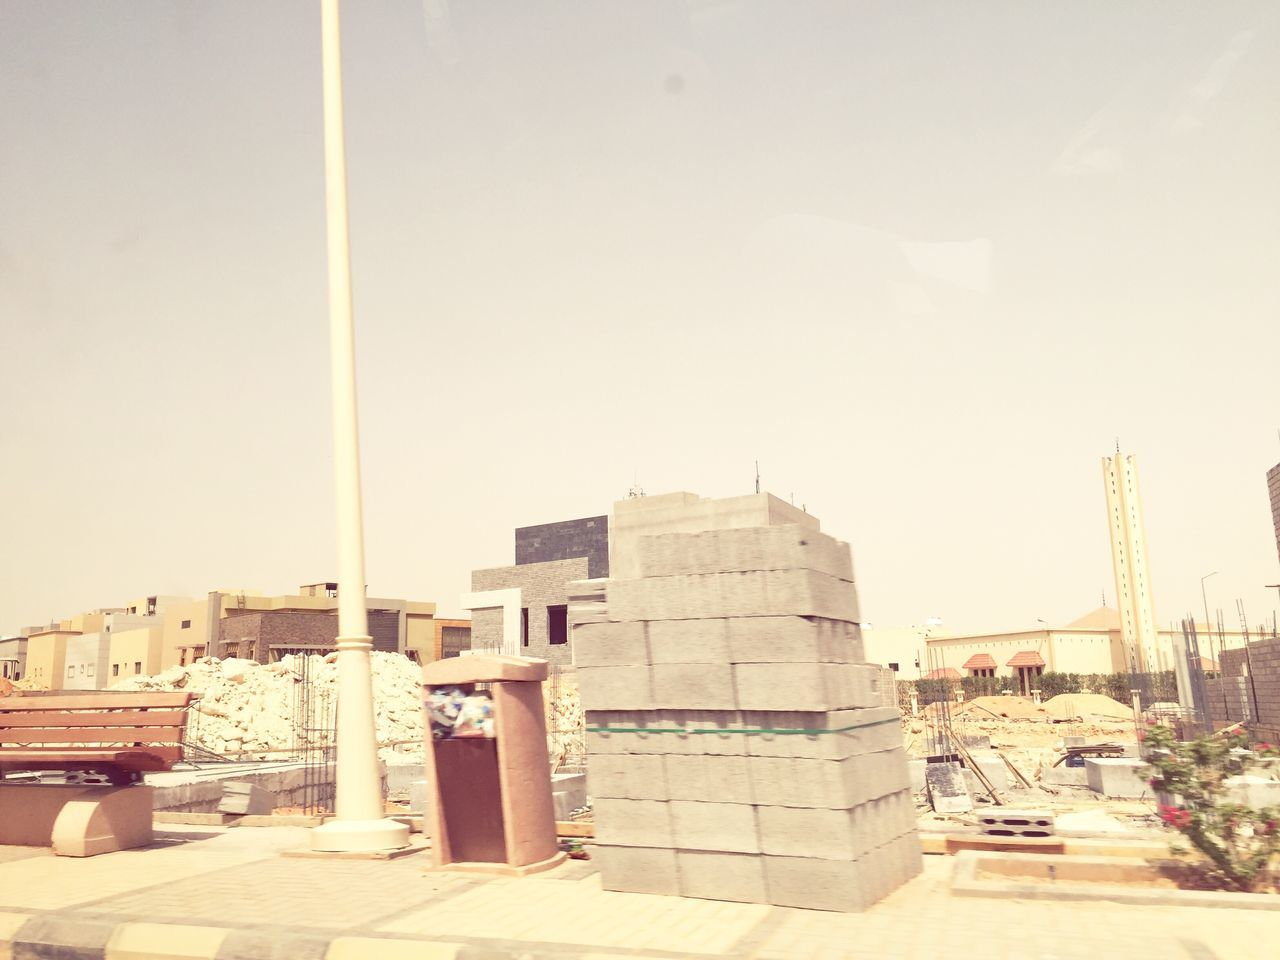 Blocks Architecture Built Structure Building Exterior No People City Outdoors Day Clear Sky Cityscape Sky Work In Progress 40 Degrees Celcius Empty Streets No Pedestrians Speeding Yellow The Street Photographer - 2017 EyeEm Awards